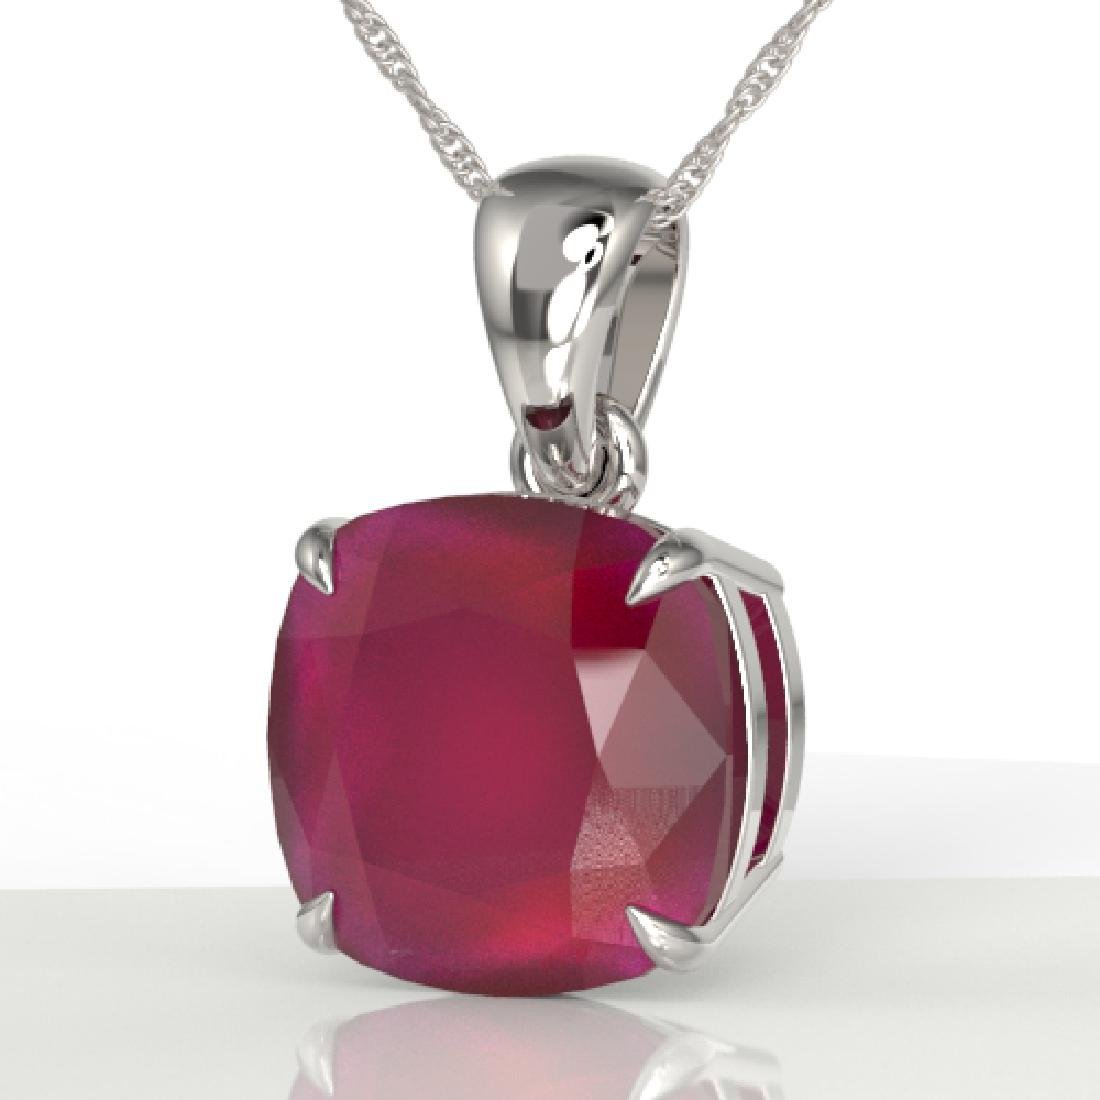 6 Cushion Cut Ruby Solitaire necklace 18K White Gold